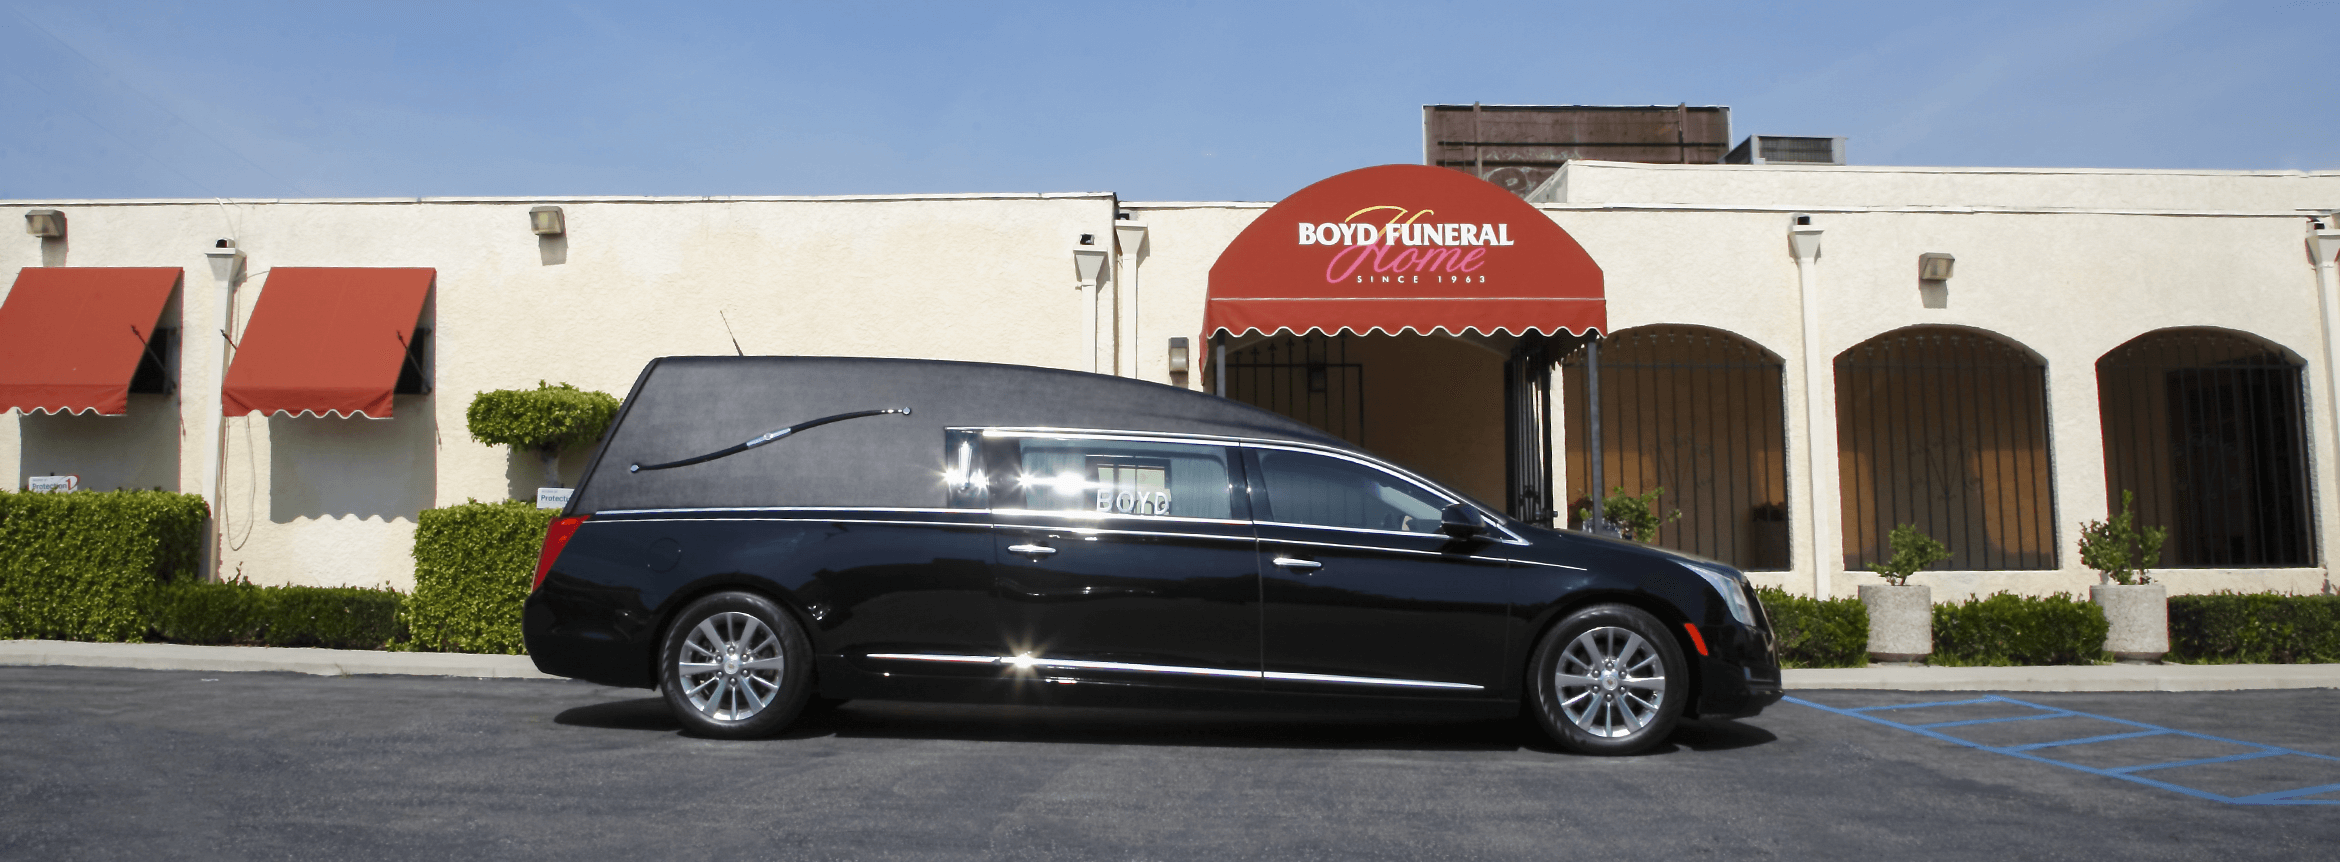 Boyd Funeral Home Los Angeles Ca Funeral Home And Cremation